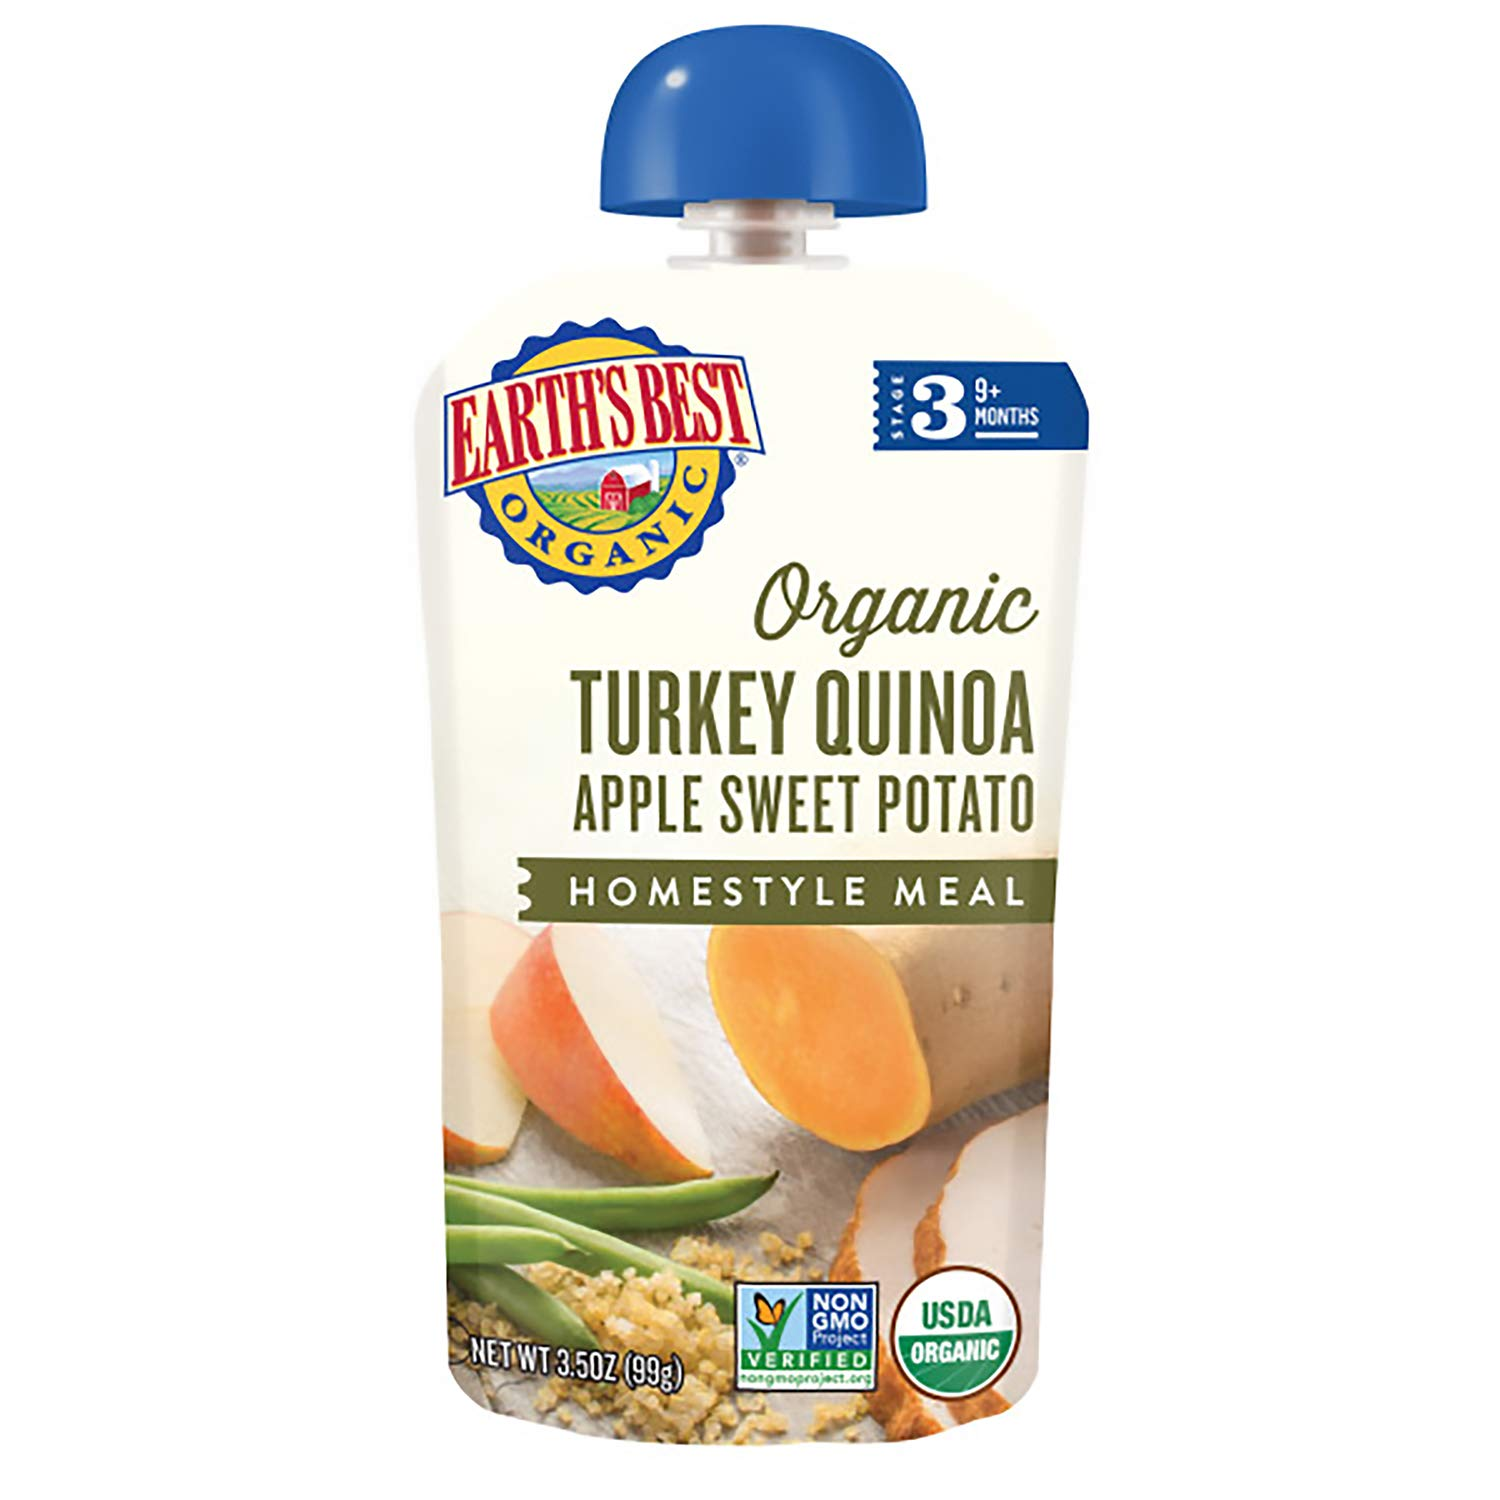 Earth's Best Organic Stage 3 Baby Food, Turkey Quinoa Apple Sweet Potato, 3.5 Oz Pouch (Pack of 6)